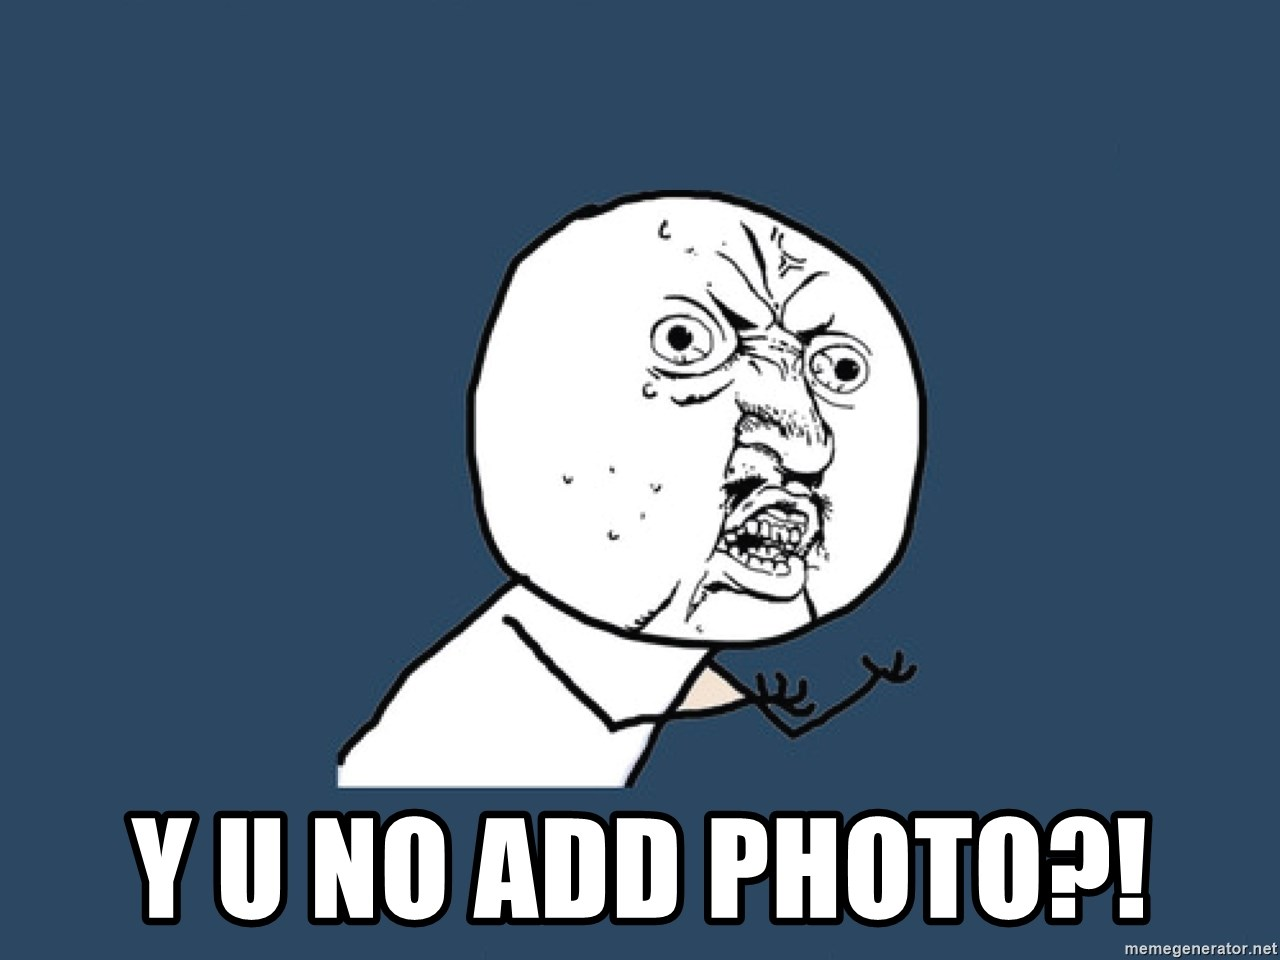 Y U No -  Y U NO ADD PHOTO?!